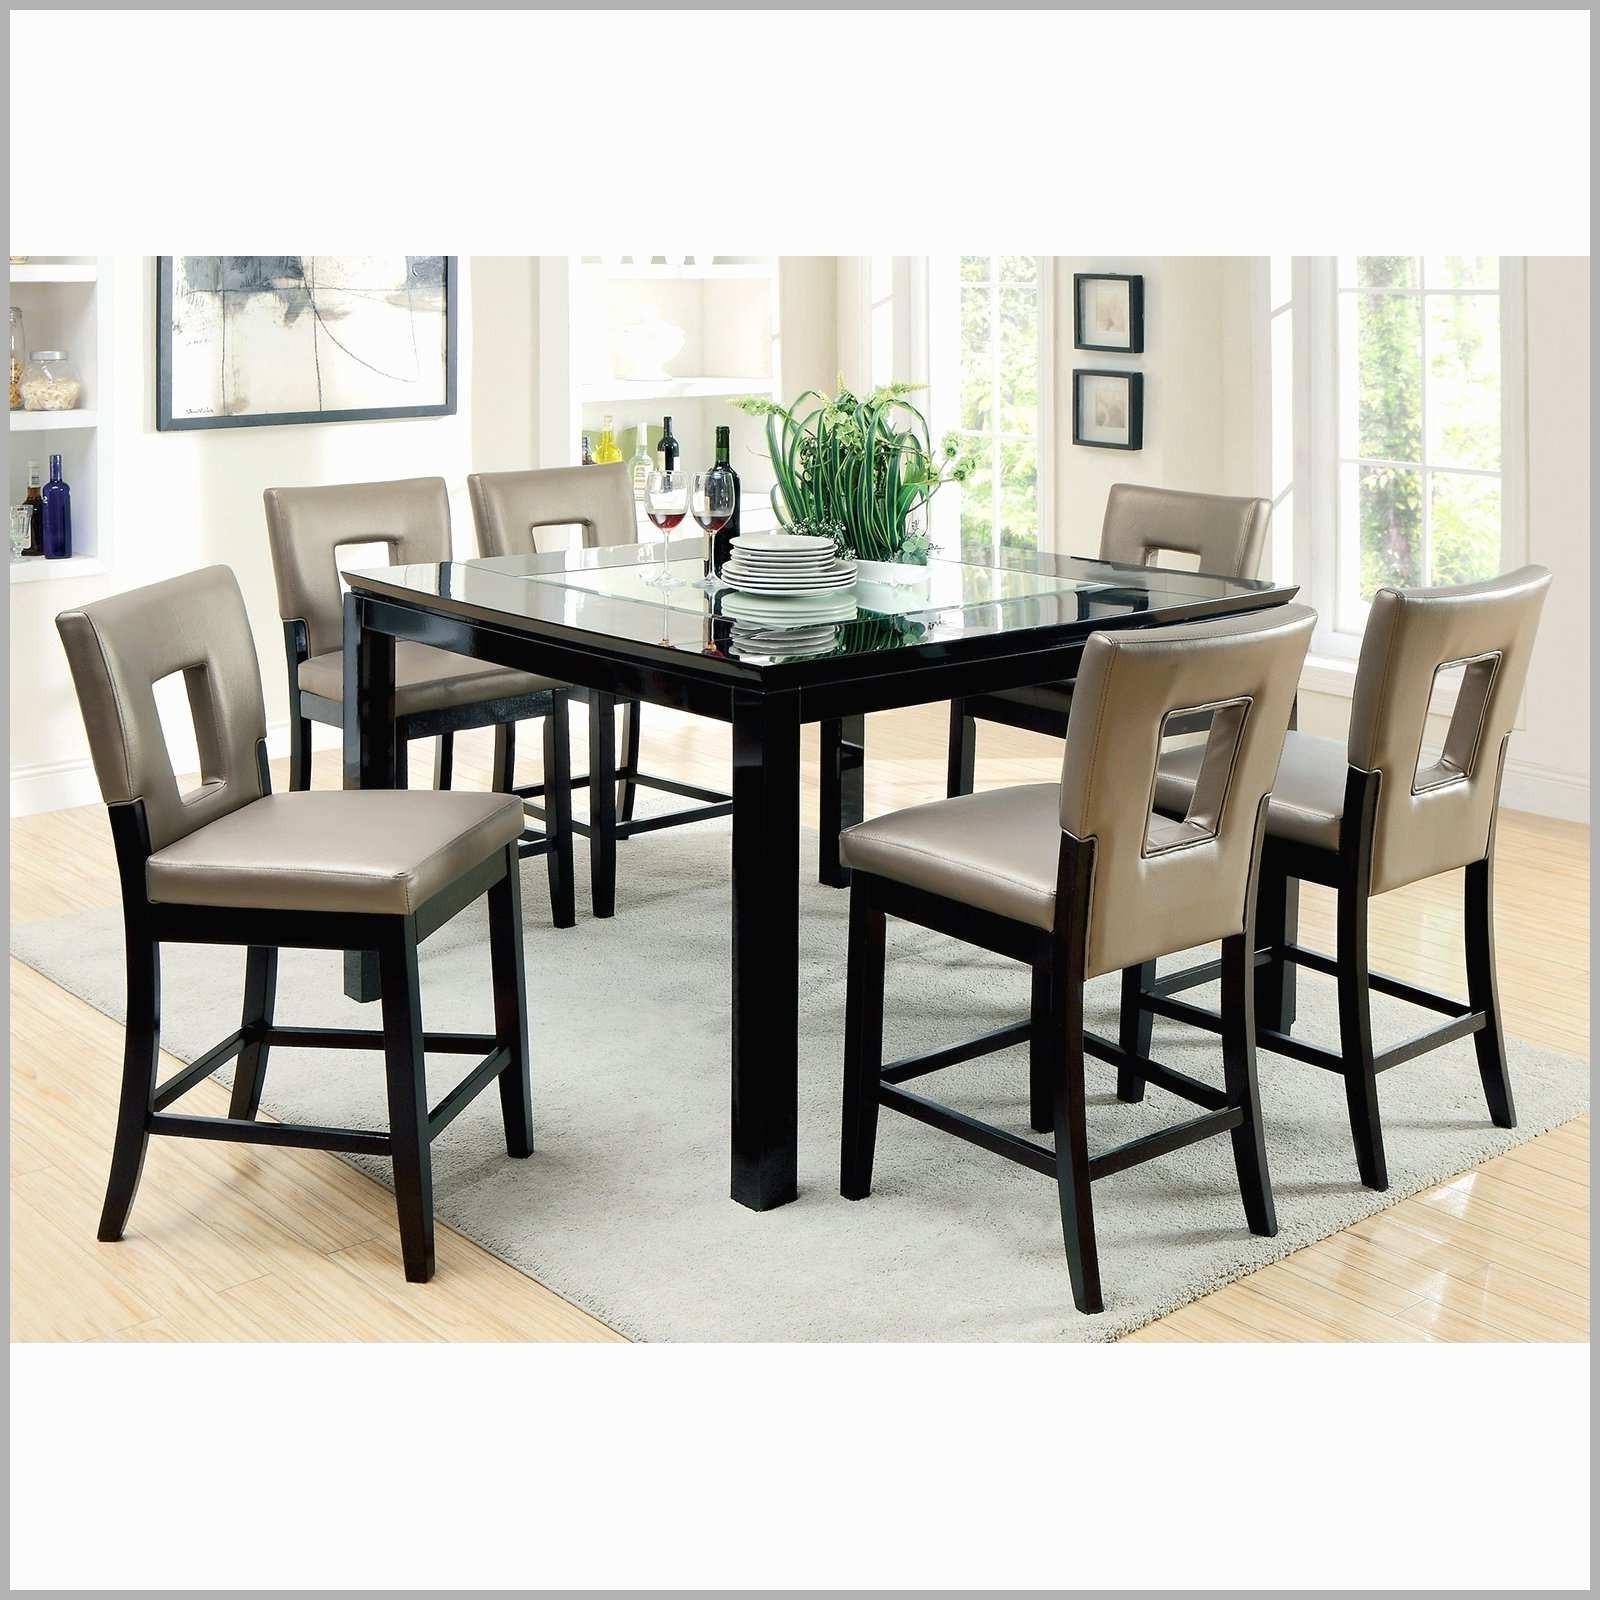 8 Seater Dining Table Sets with regard to Well-liked White High Gloss Extending Dining Table Luxury 8 Seater Dining Table